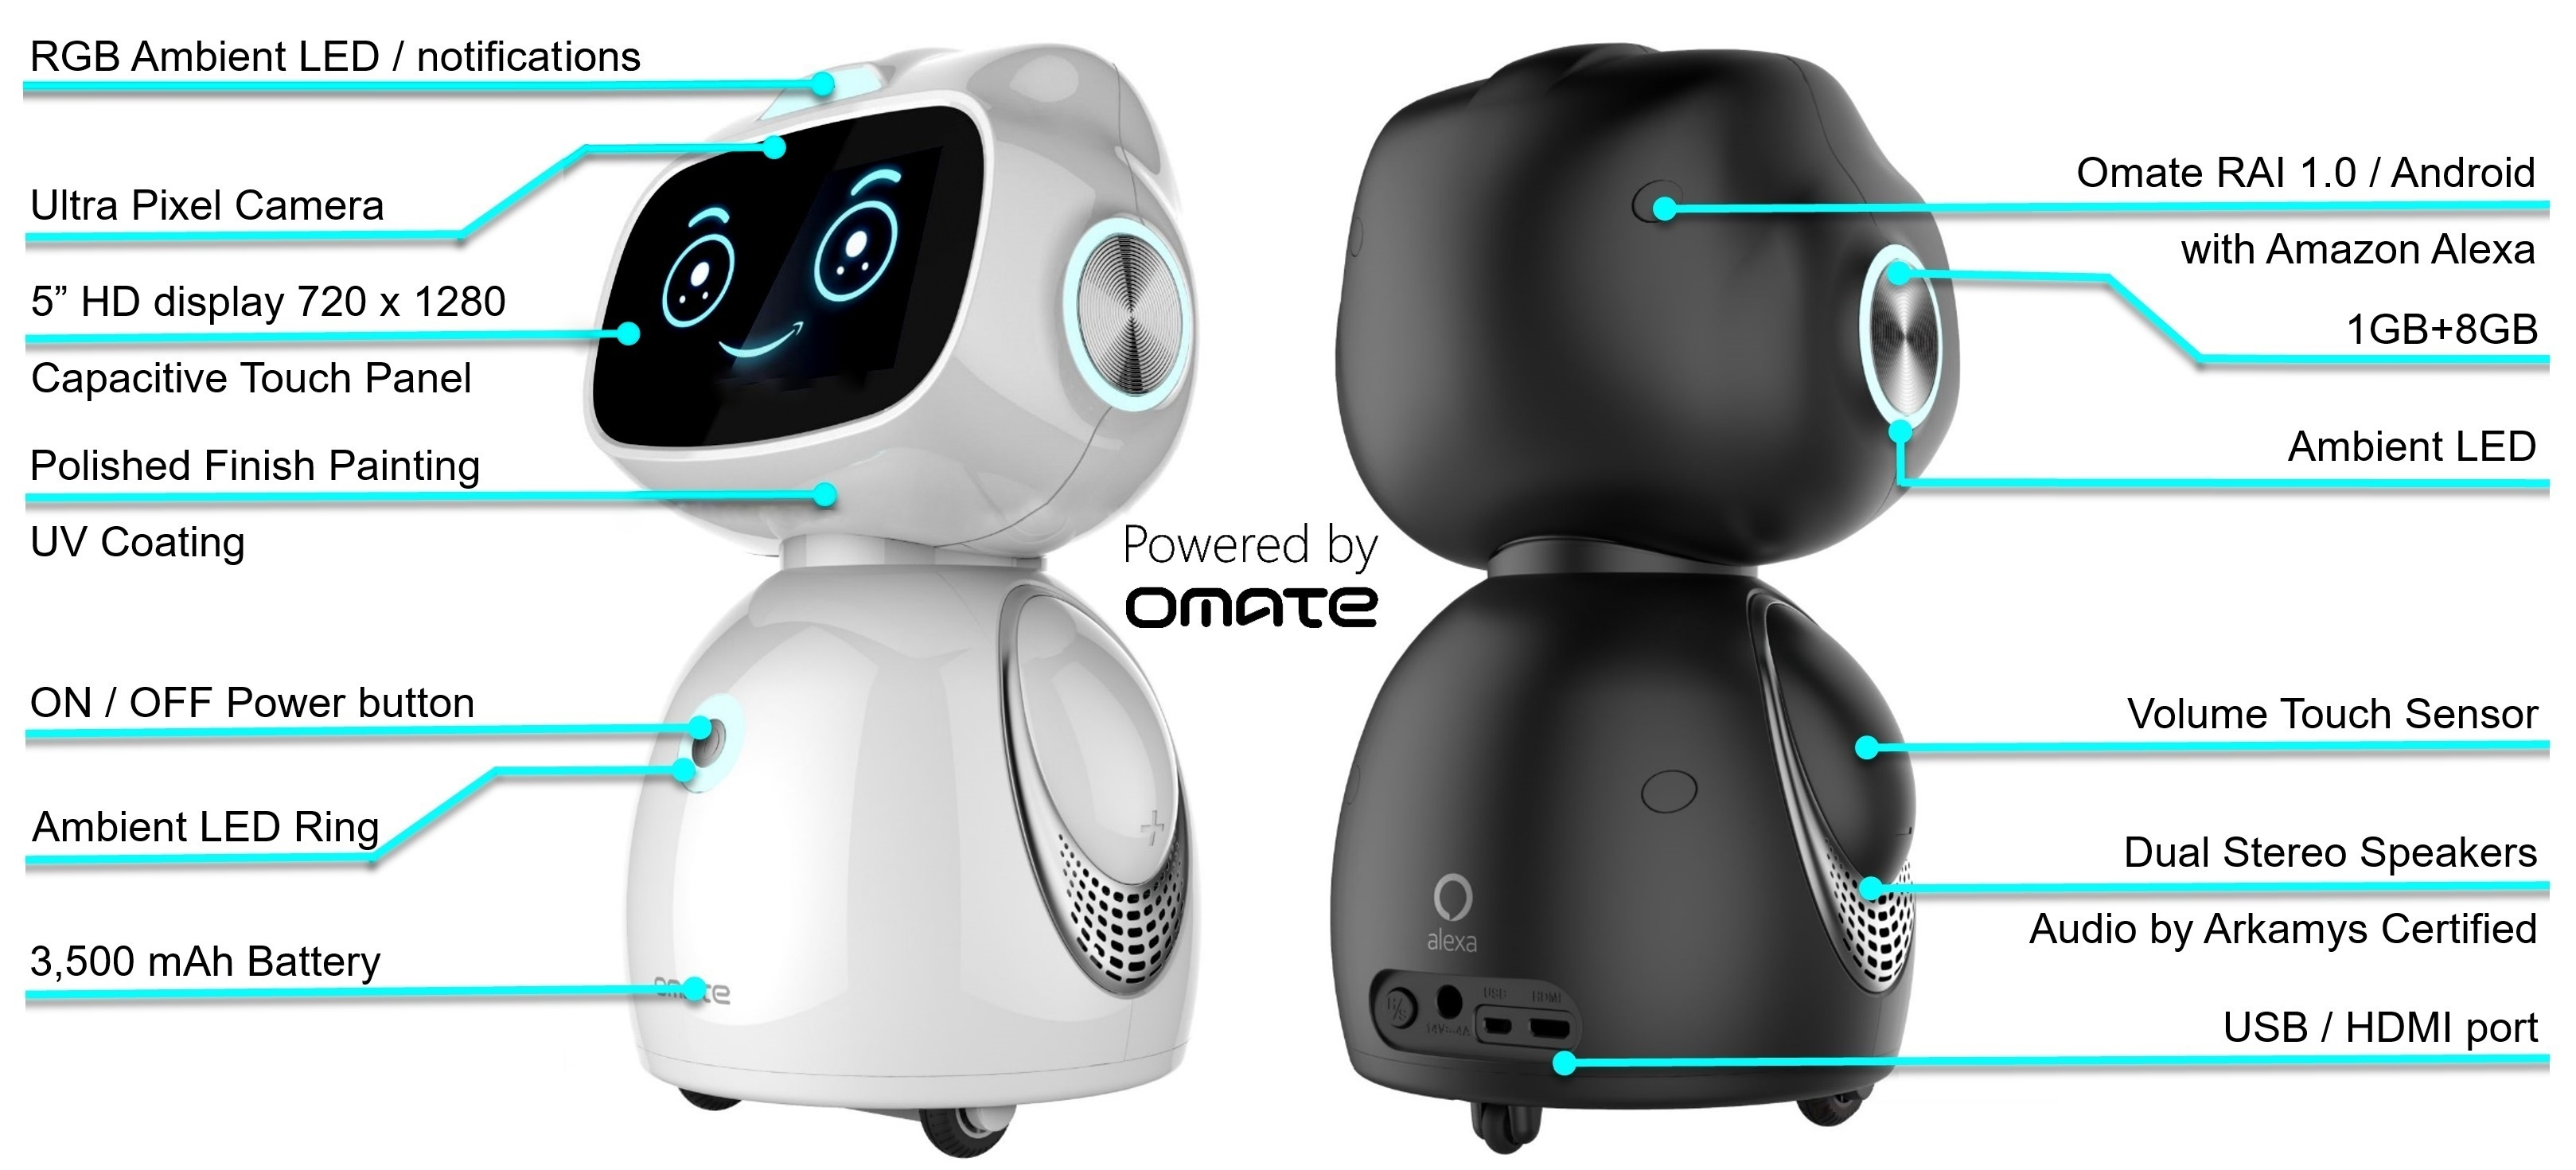 Omate Yumi, an Amazon Alexa-Enabled Home Robot